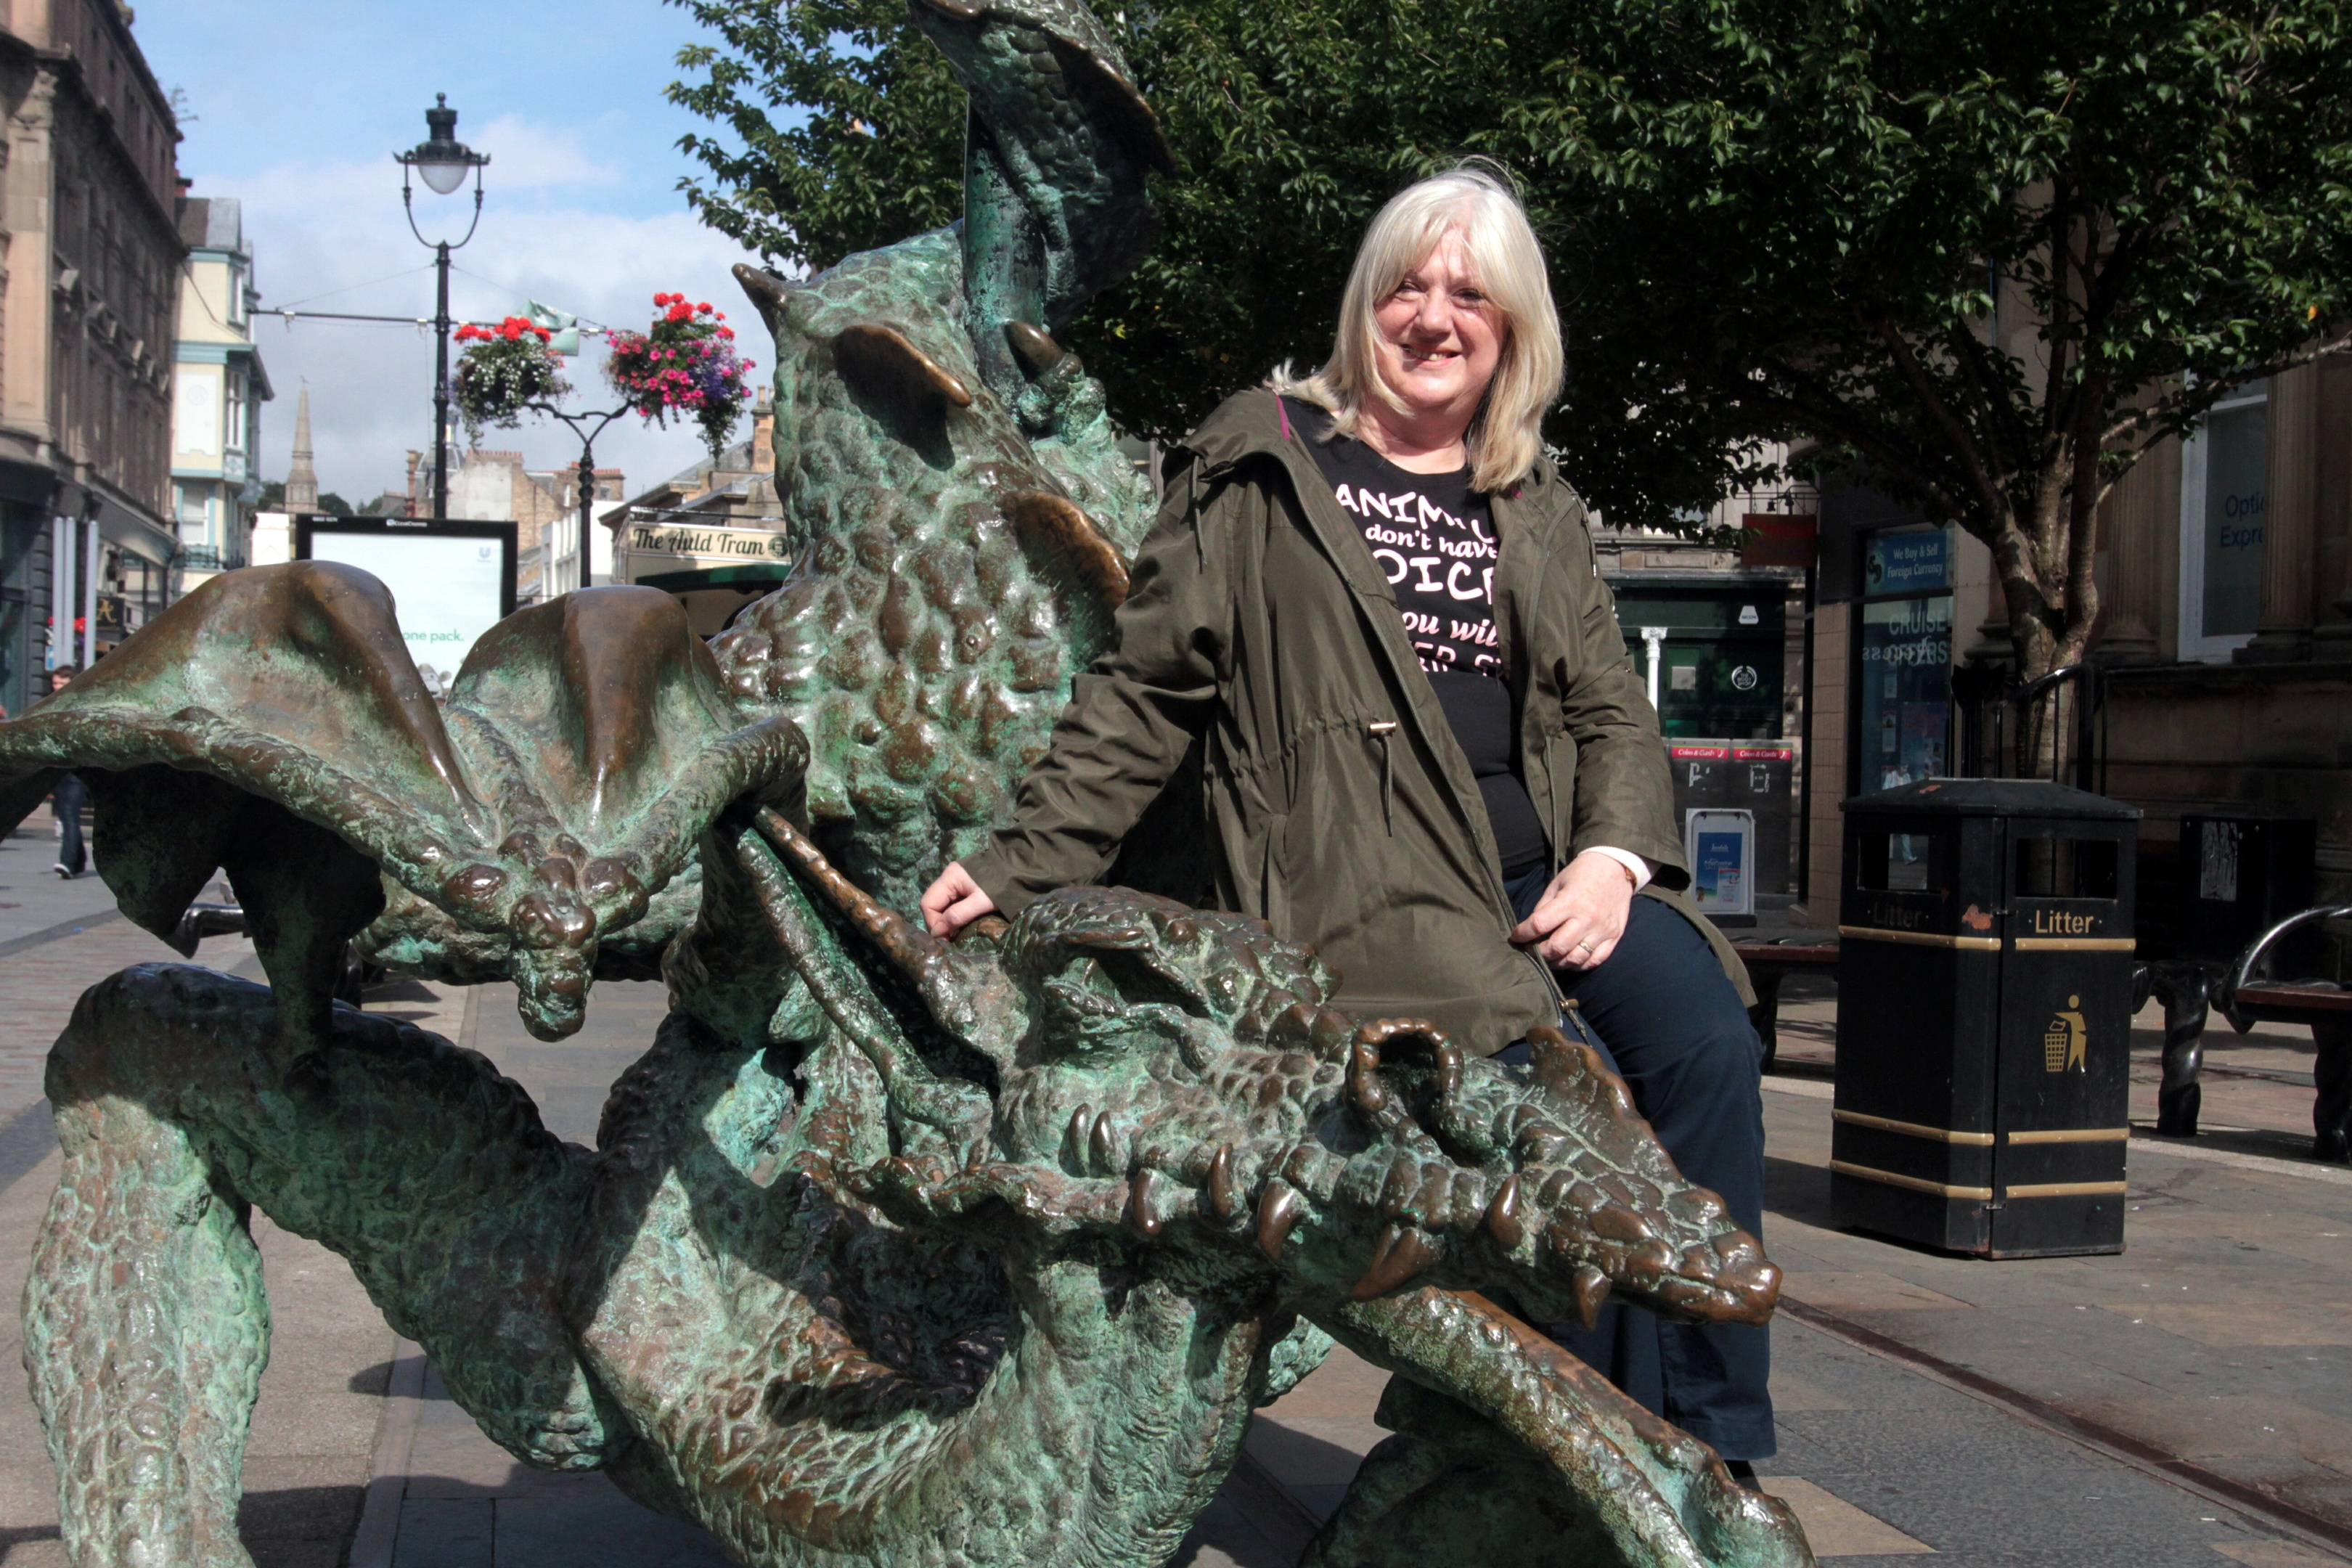 Sandra Boyle, 67, says every woman should get checked for womb and cervical cancer.